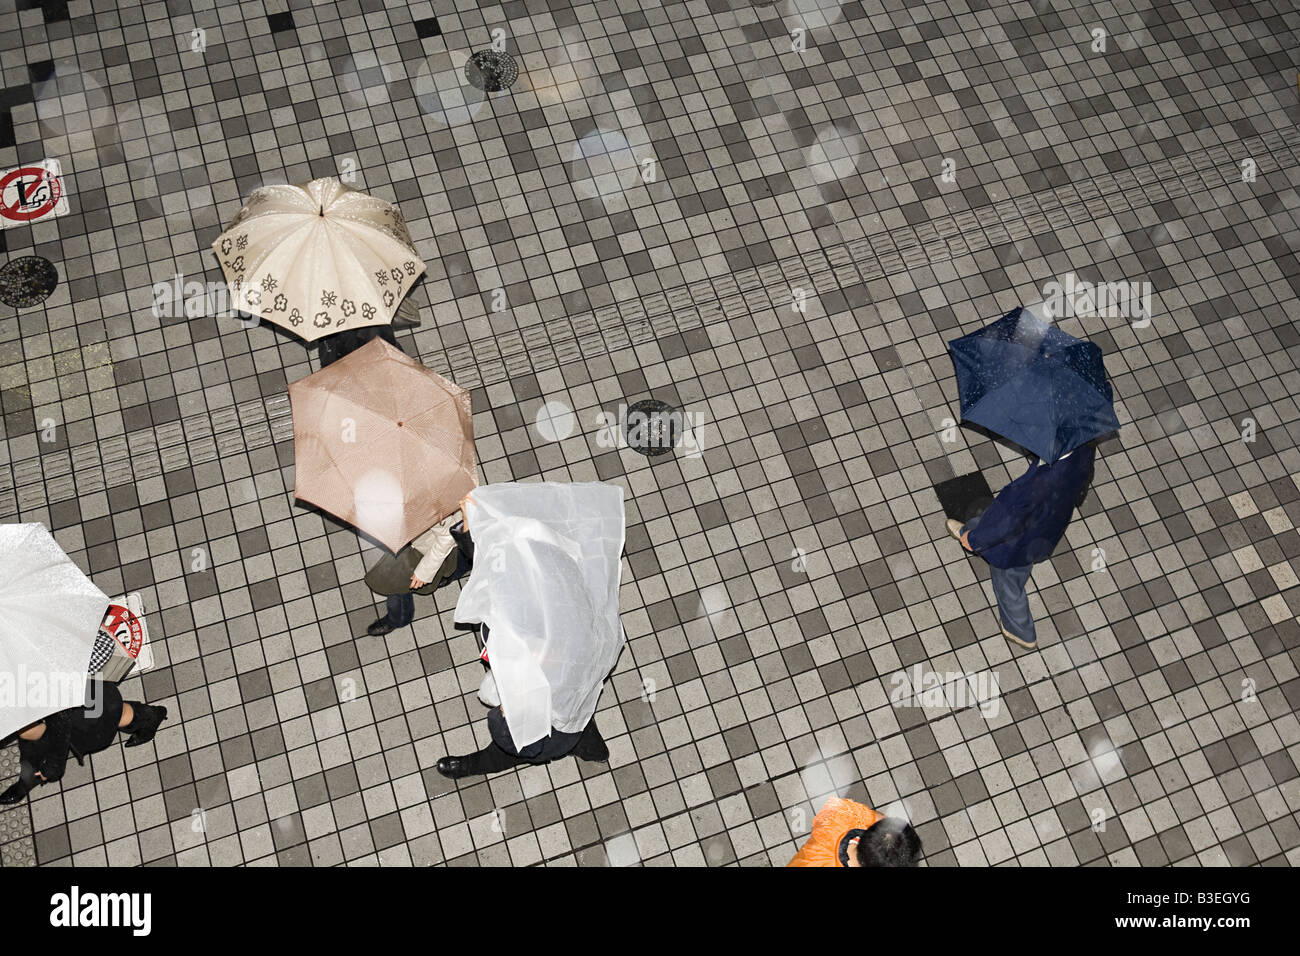 People with umbrellas - Stock Image